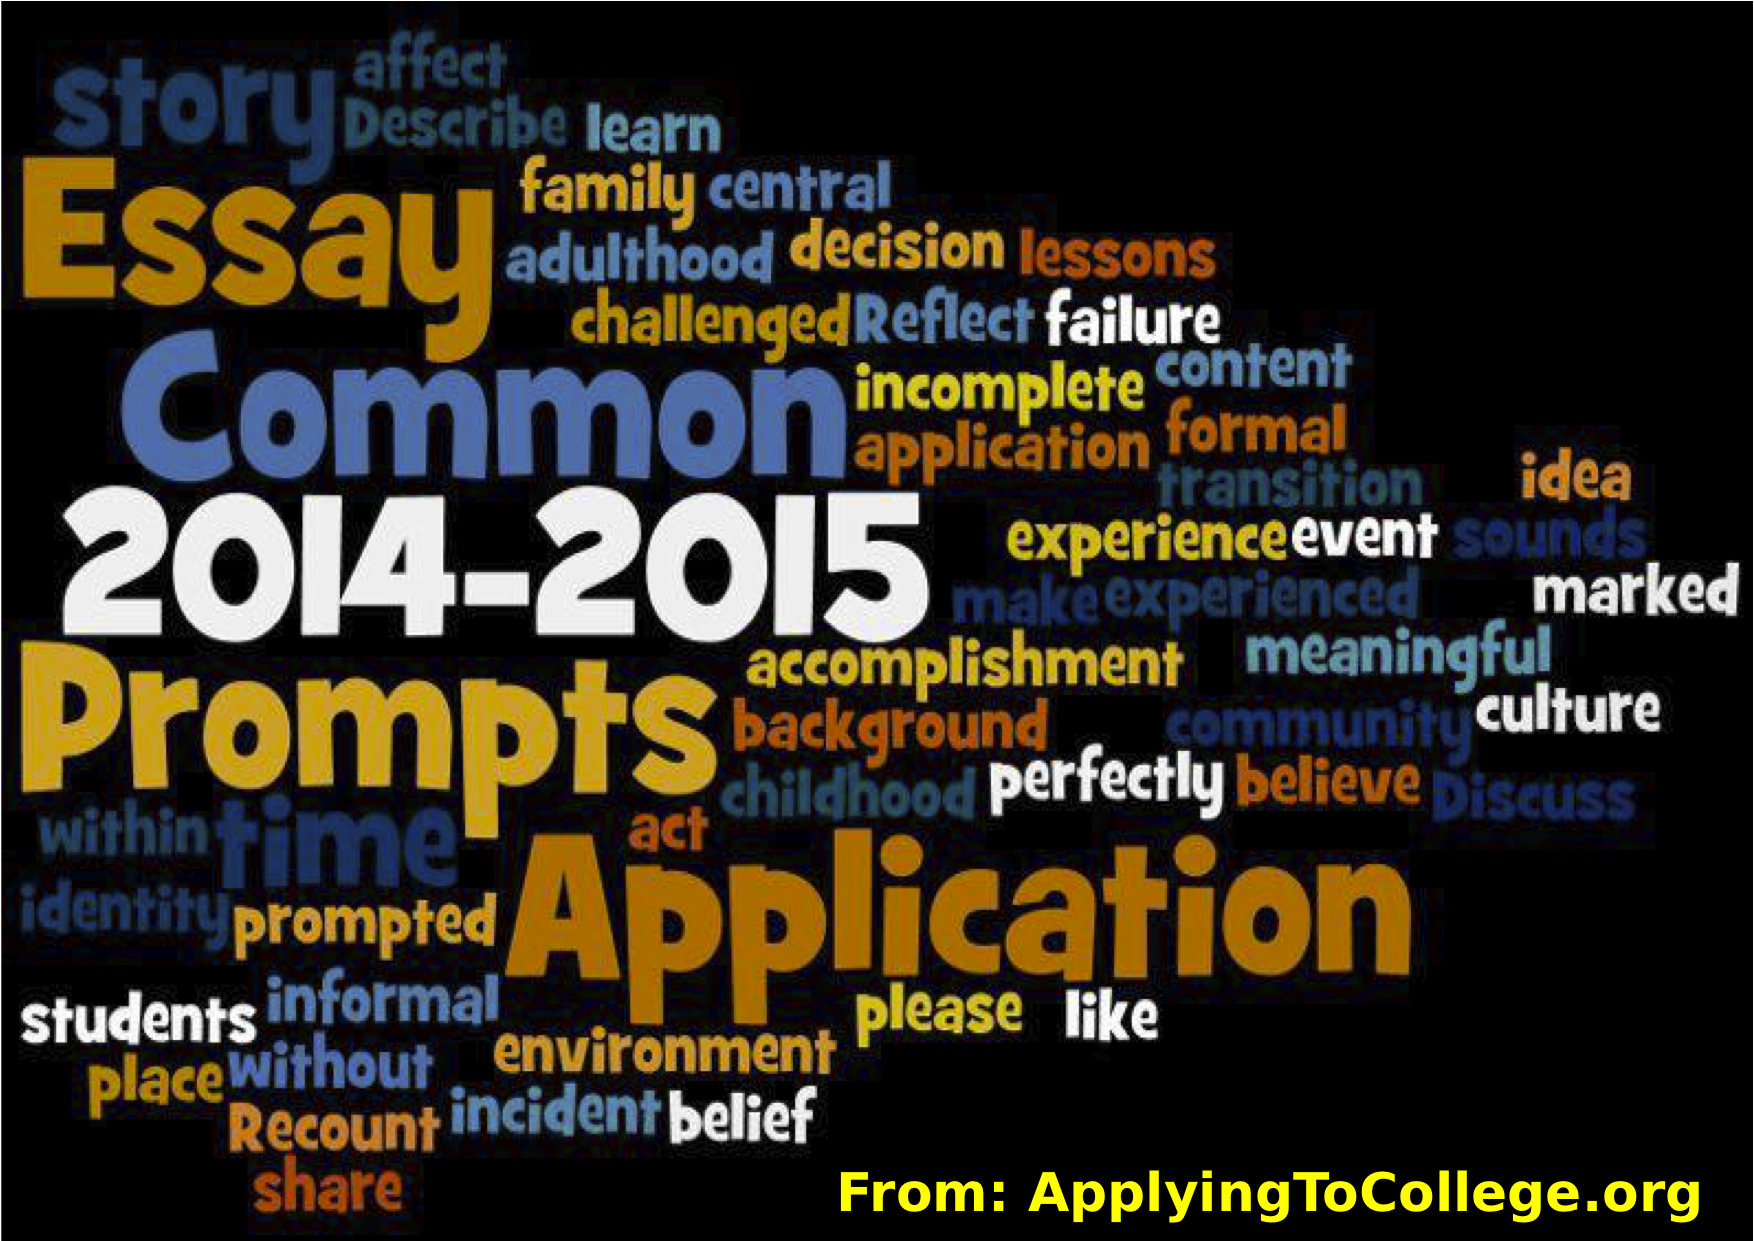 common app essay for 2014 The 2015-2016 common application essays: #2 the first sentence, in italics, simply indicates that the wording has changed from the previous 2014-2015 prompt.